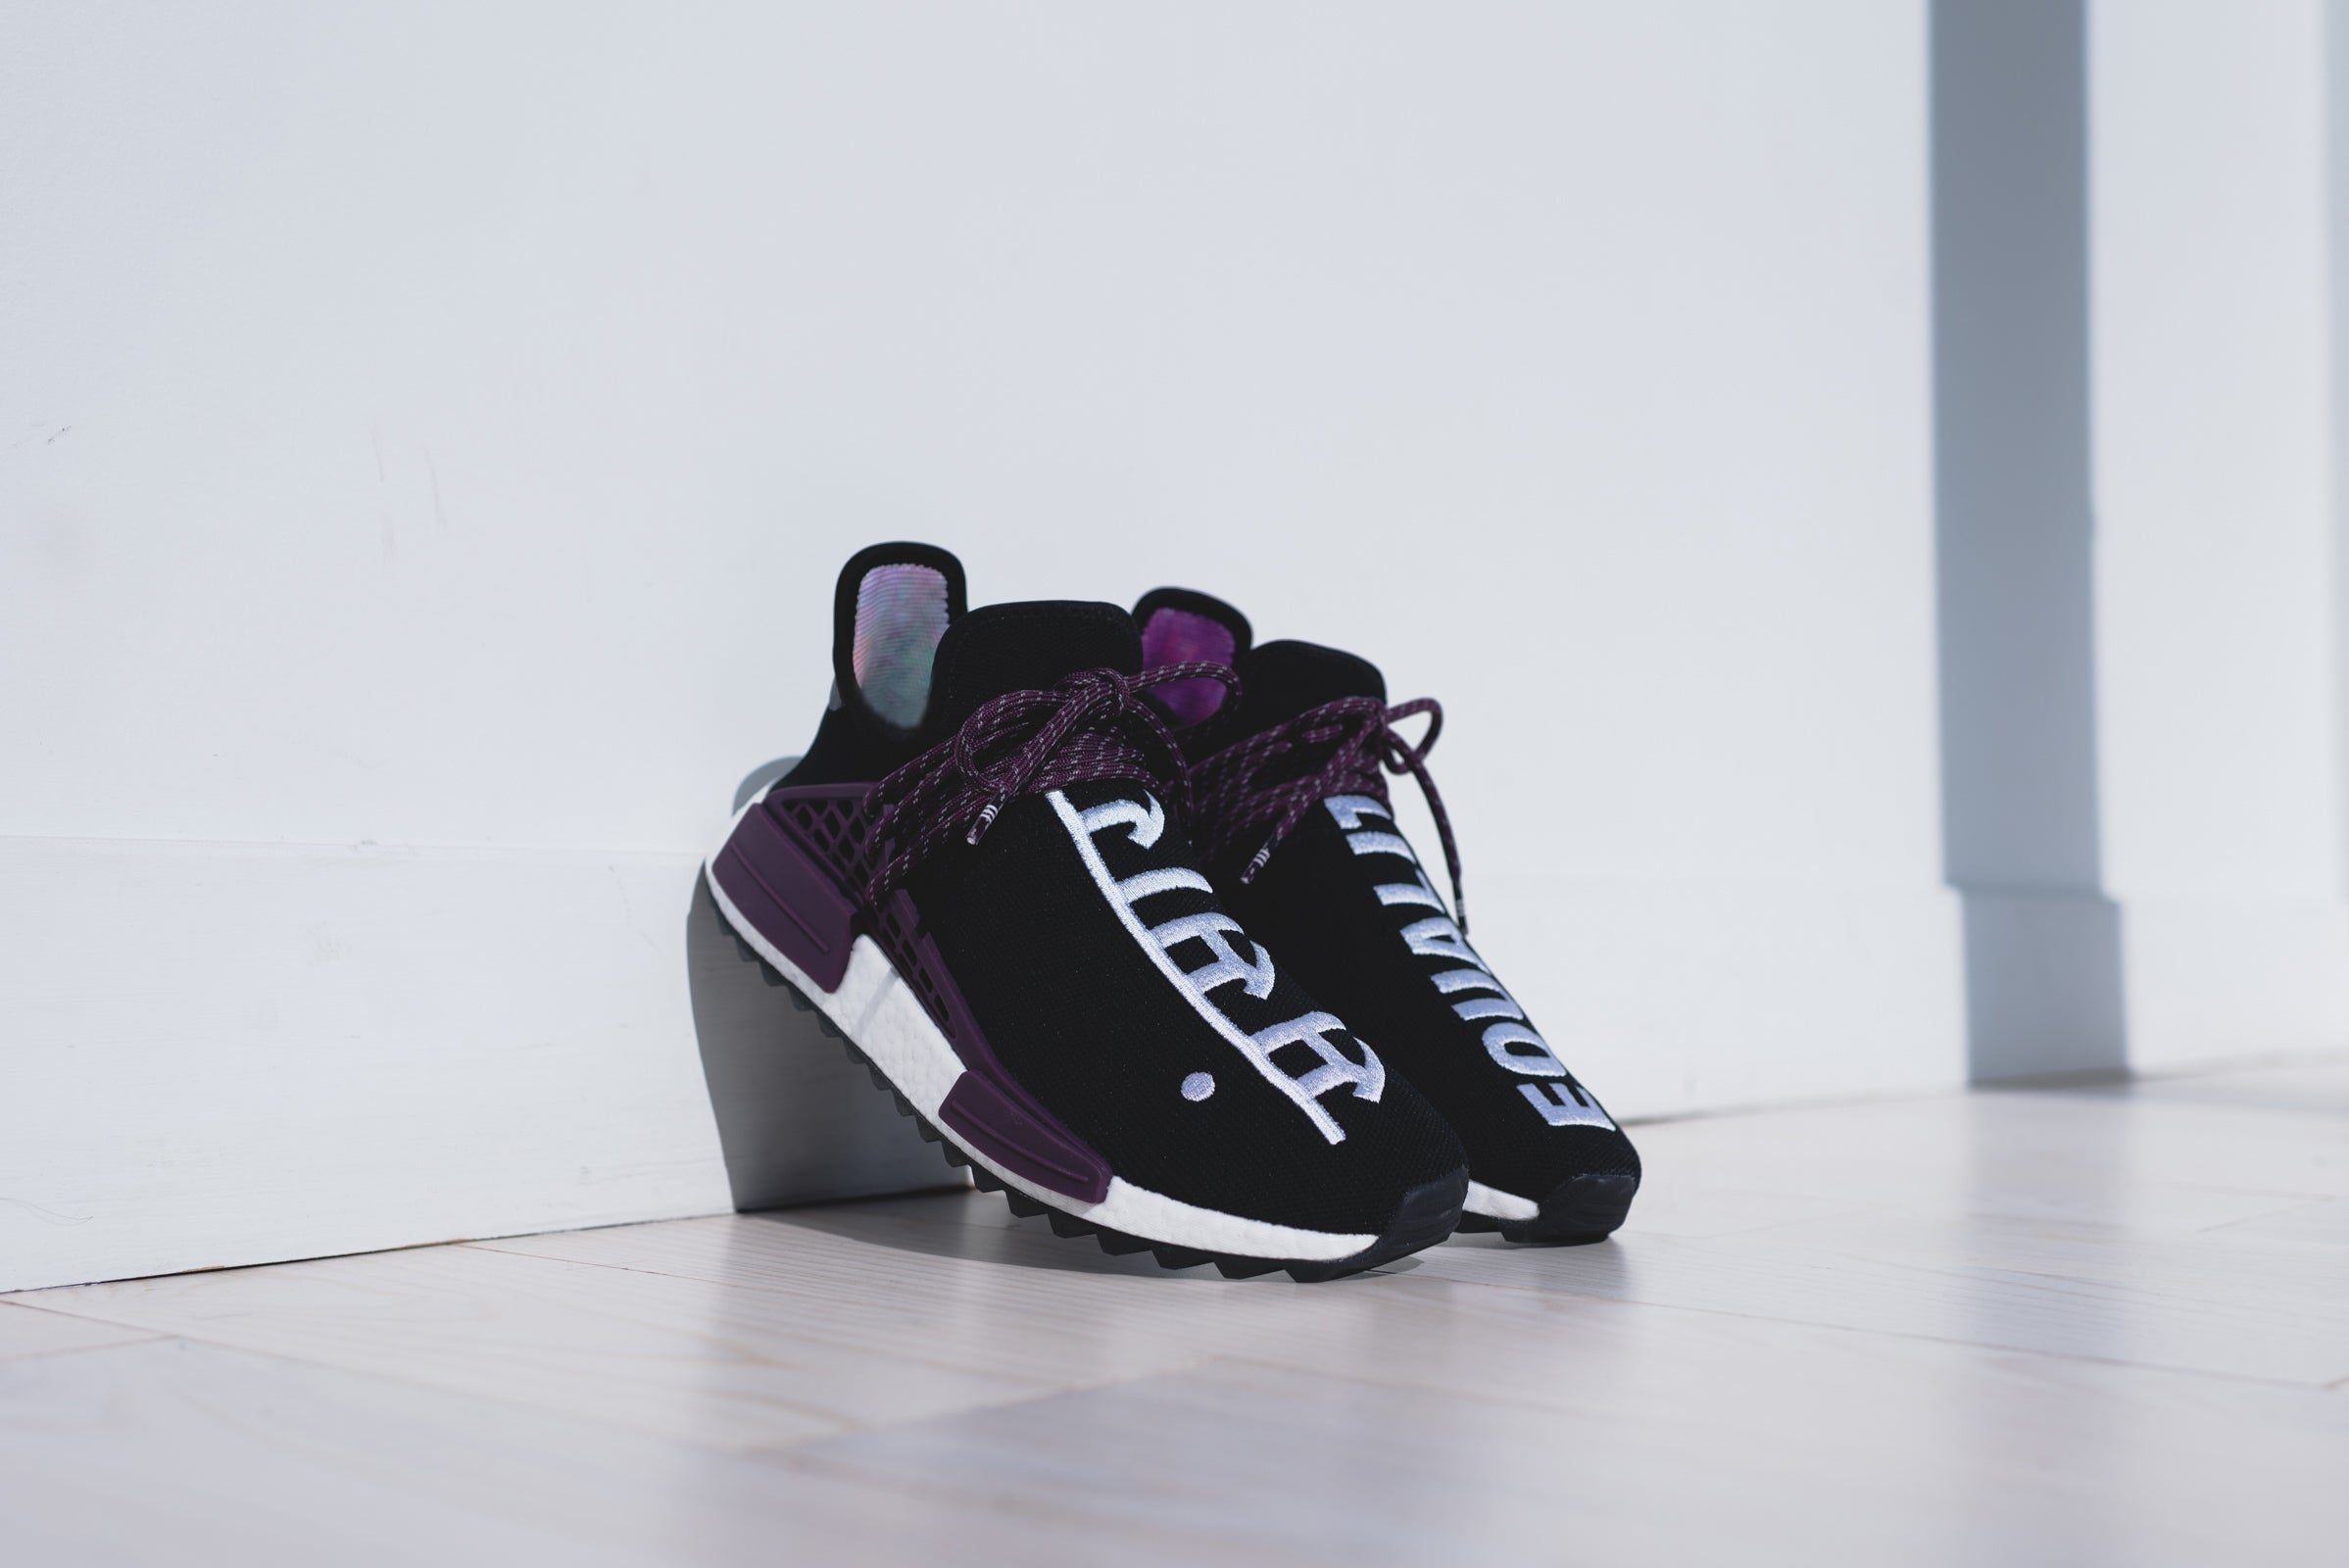 adidas Hu Originals x Pharrell Williams Hu adidas Holi NMD MC Negro / Negro 4fd84d